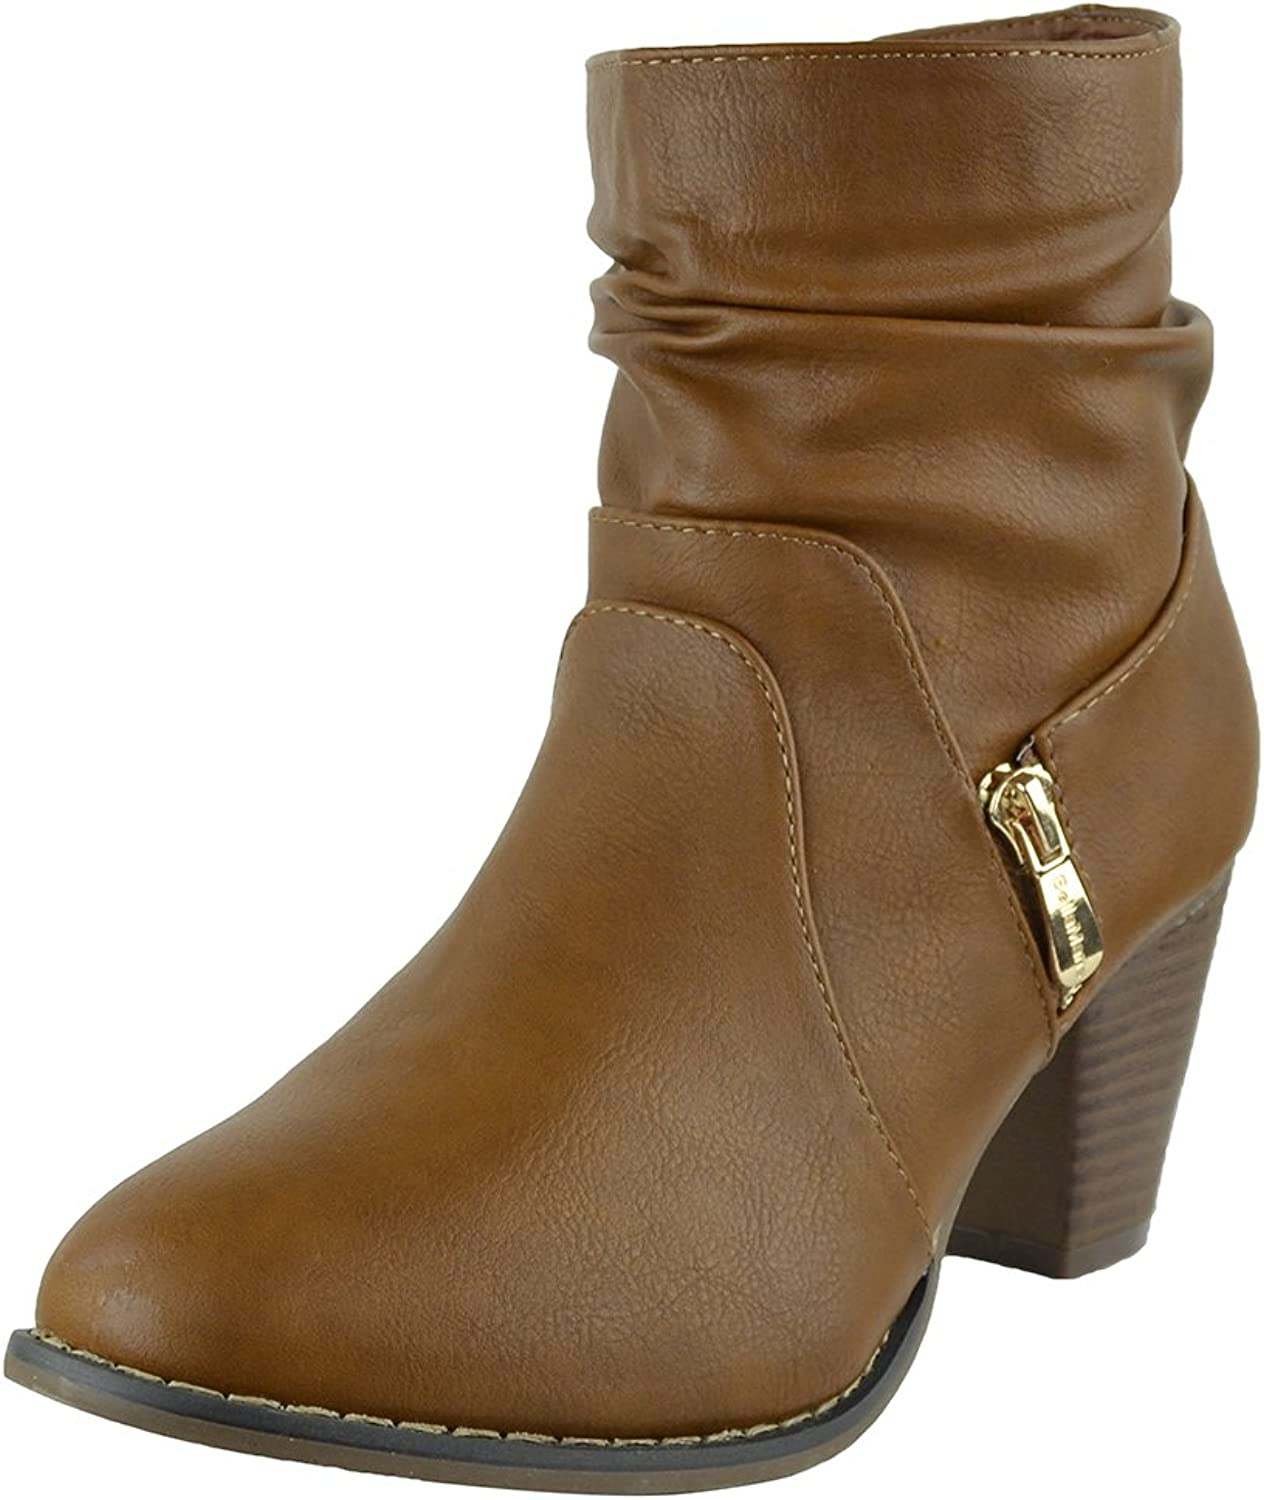 KSC Womens Ankle Boots Ruched Faux Zipper Casual Dress shoes